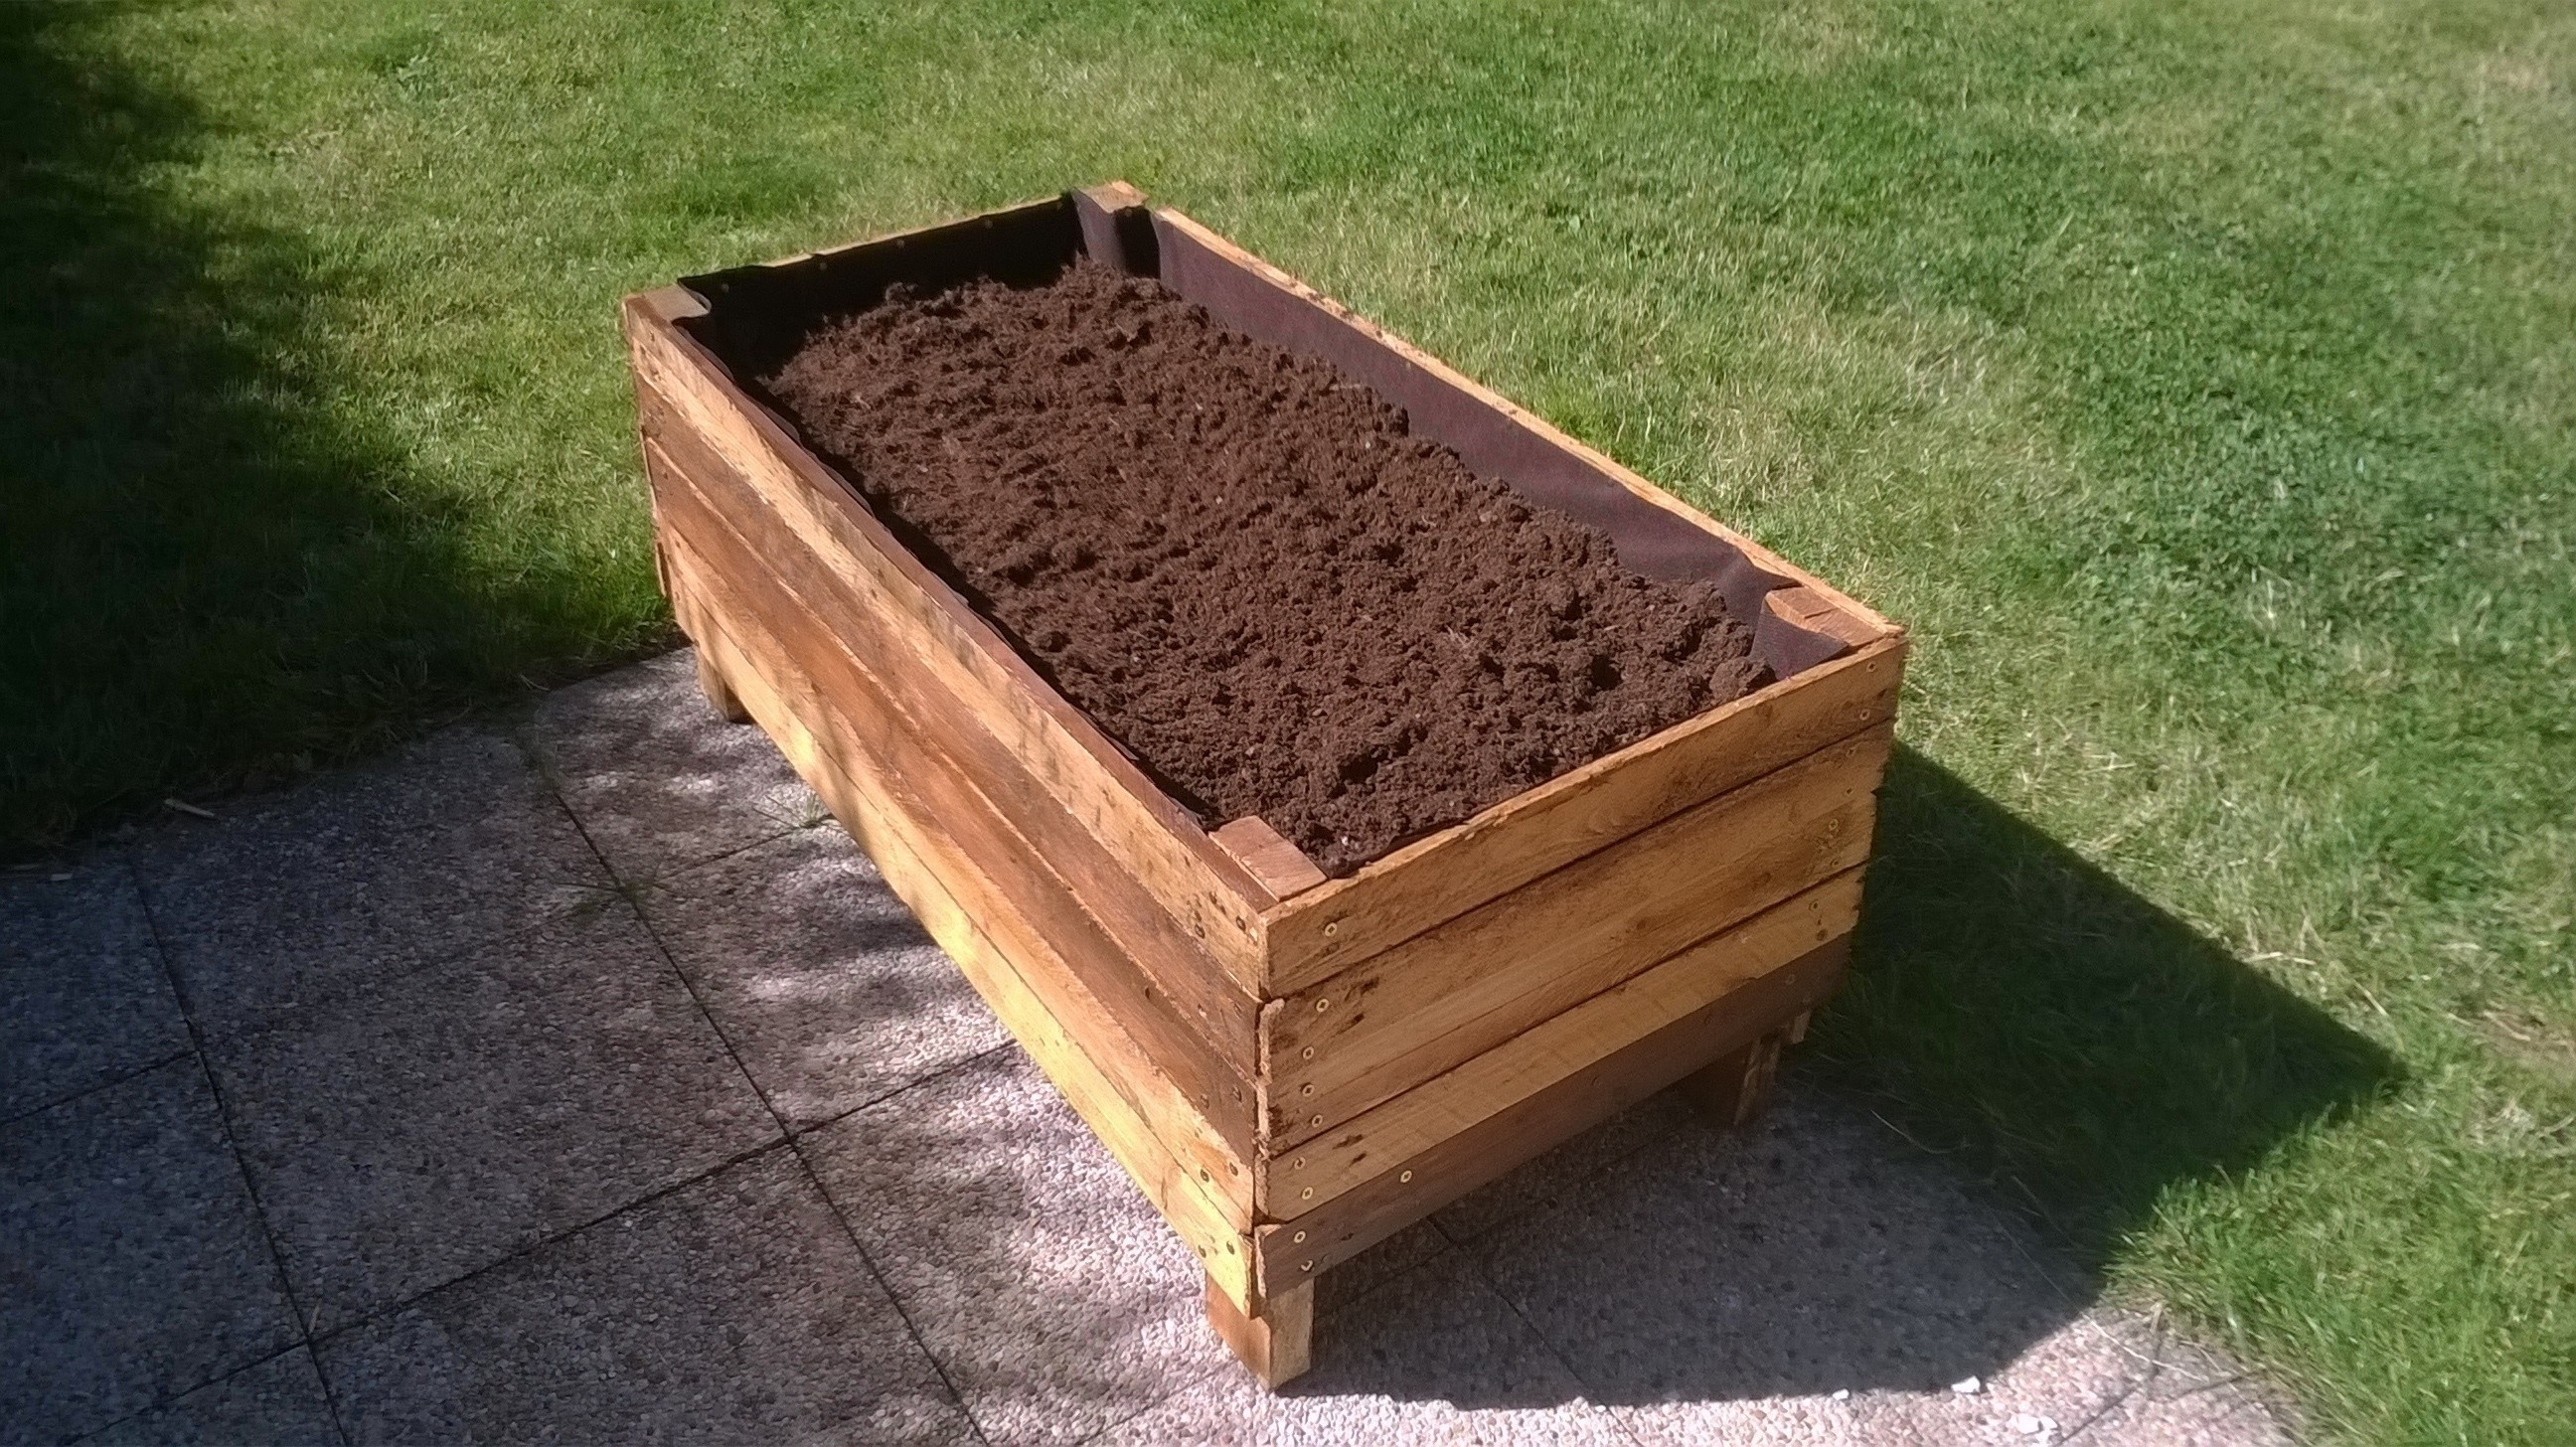 Pallet planter how to make a pallet planter home diy for What can you make out of wooden pallets